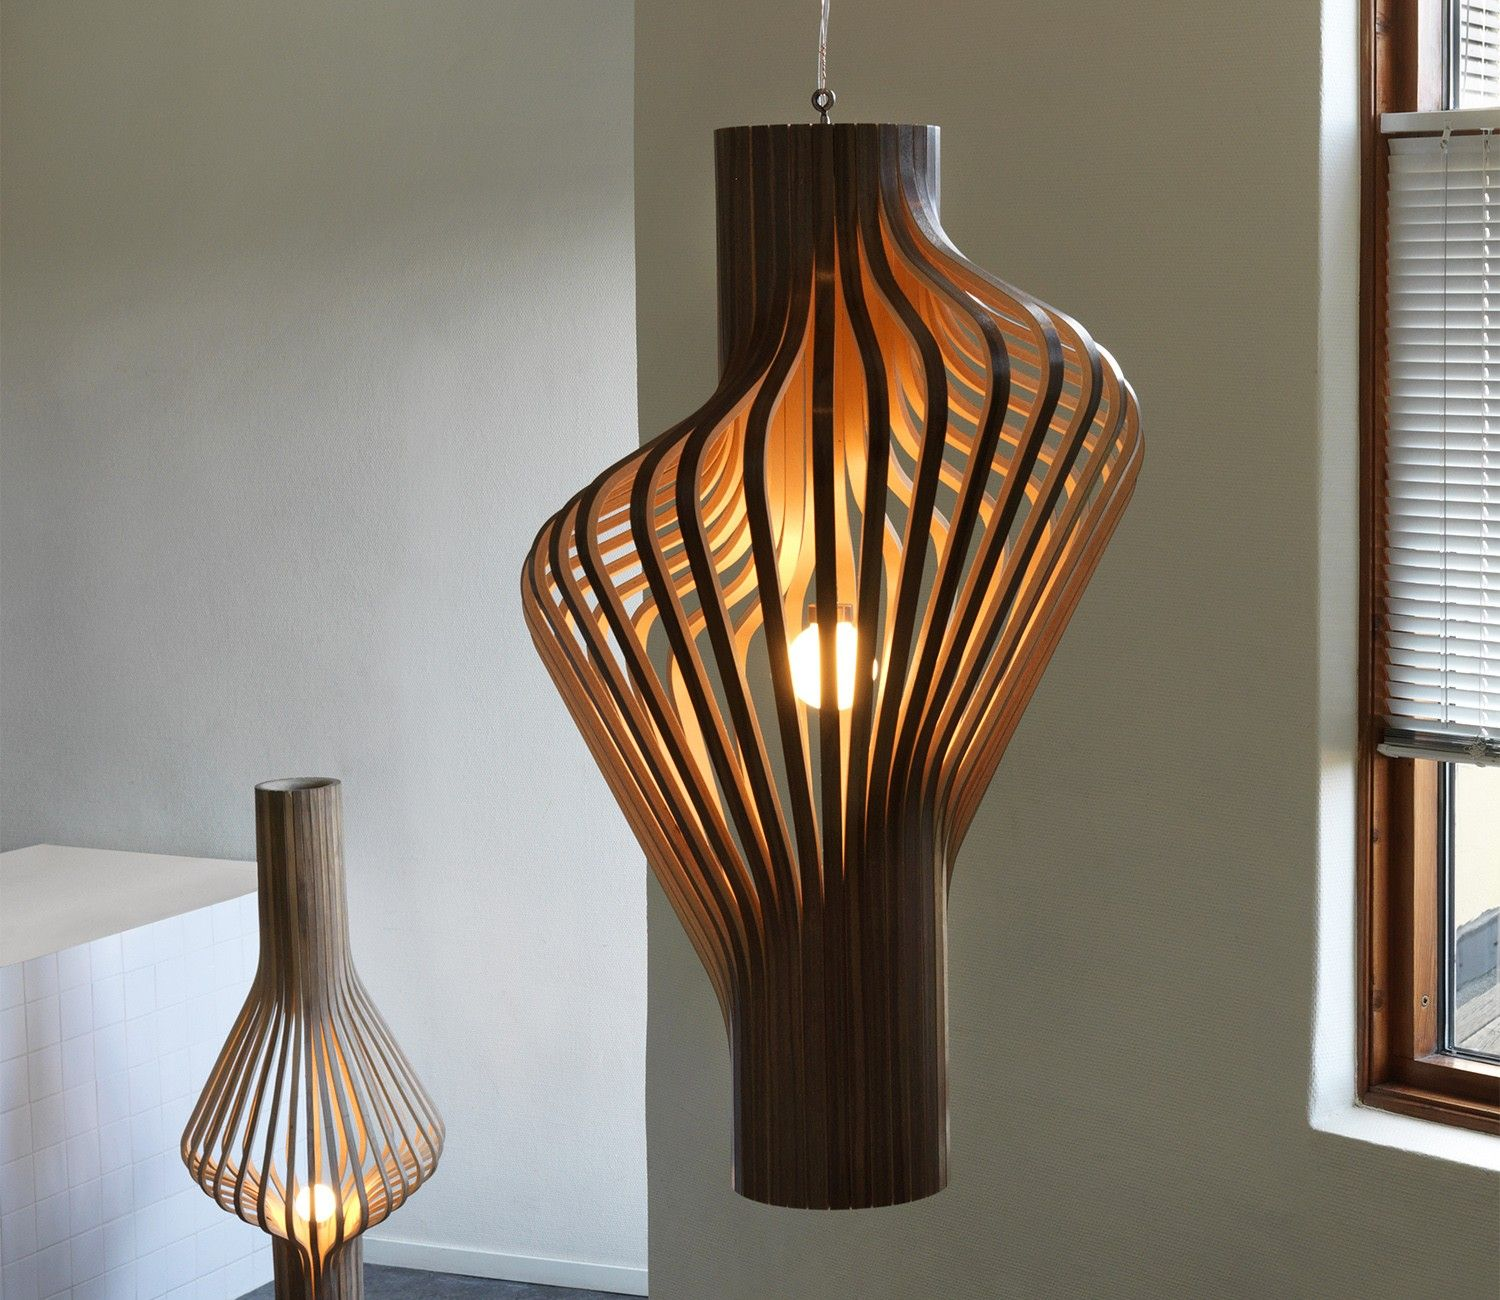 Northern Lighting Diva Pendant Light | Modern lamp design